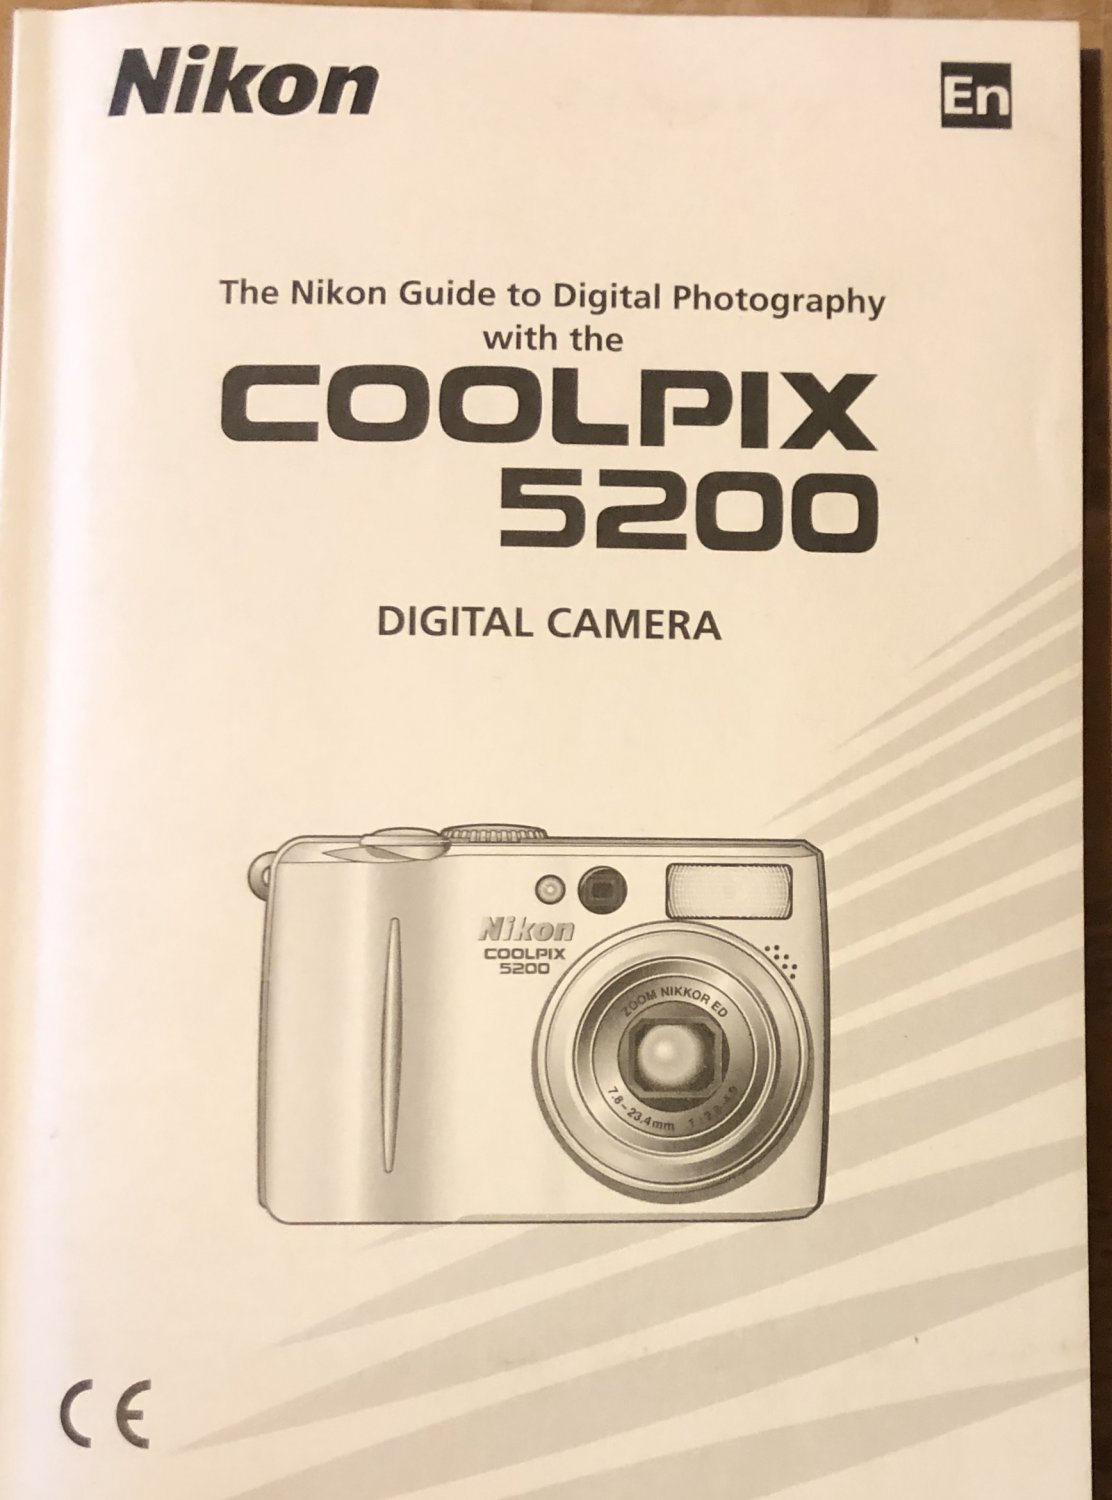 NIKON COOLPIX 5200 DIGITAL CAMERA OWNER'S MANUAL BRAND *NEW